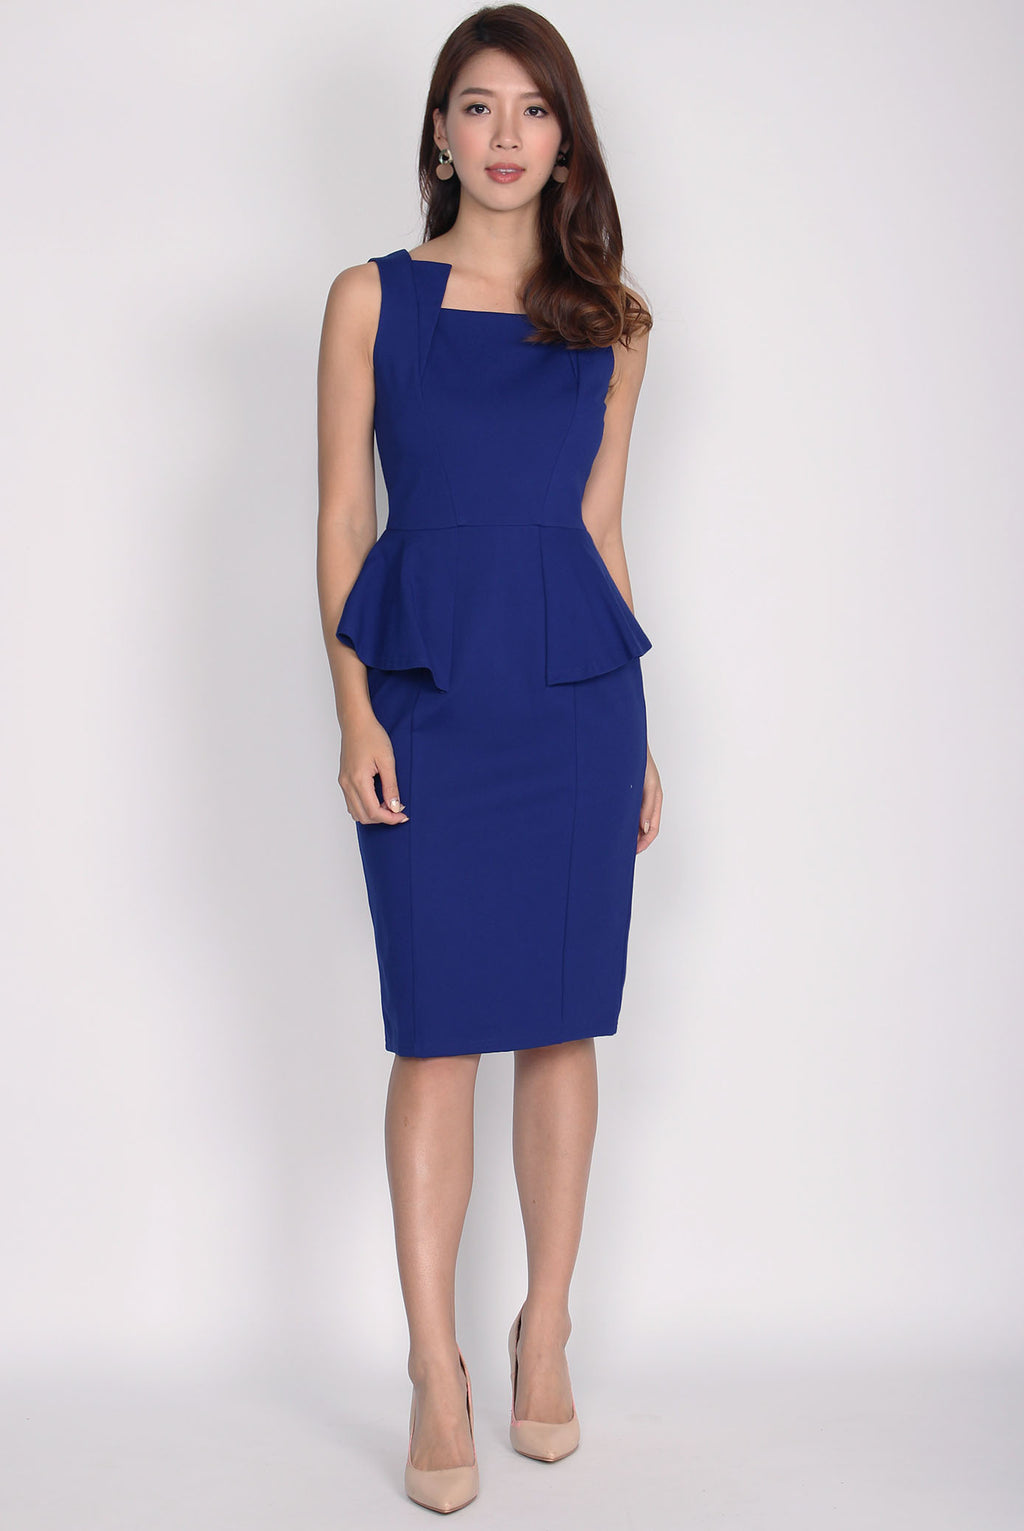 *Premium* Wisteria Peplum Asymm Neckline Dress In Blue